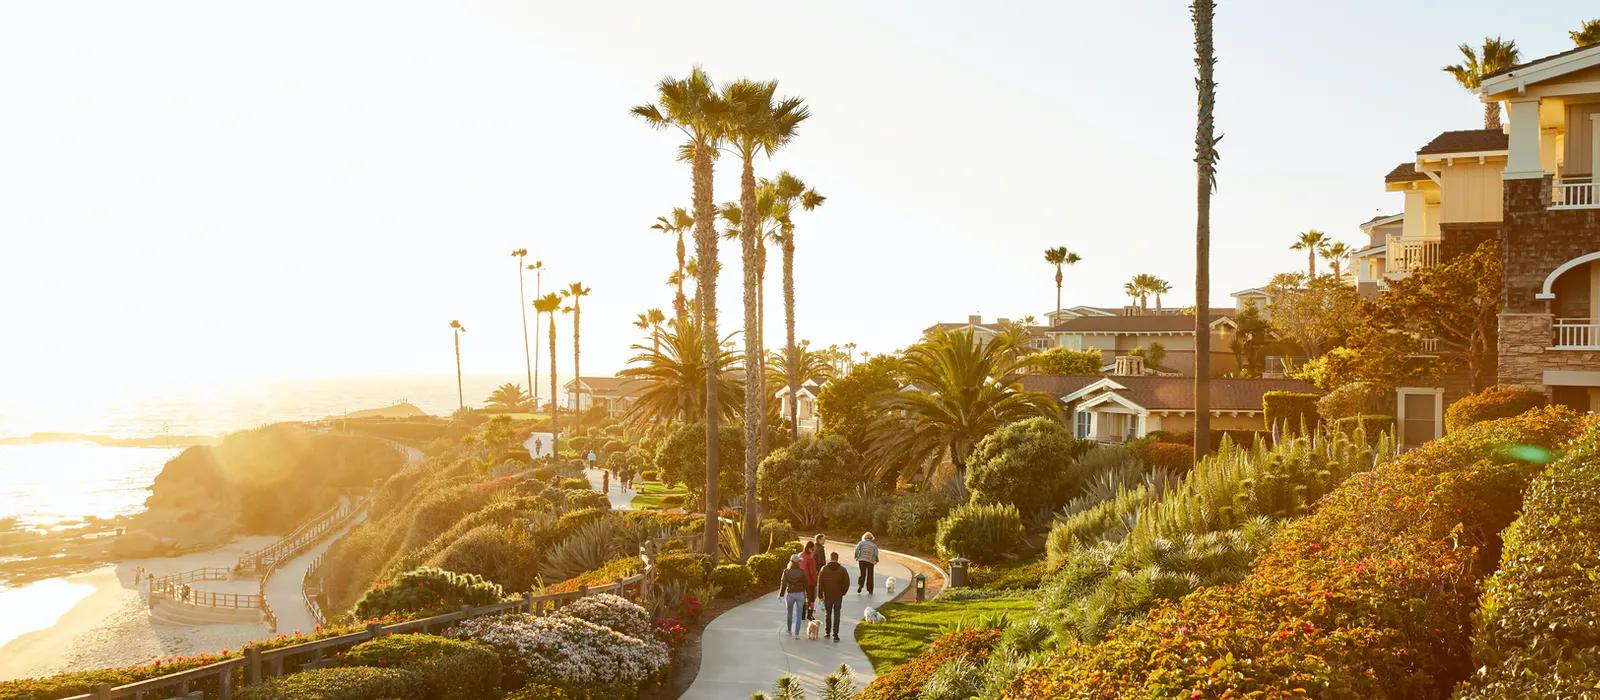 Whats Happening in the Orange County Real Estate Market